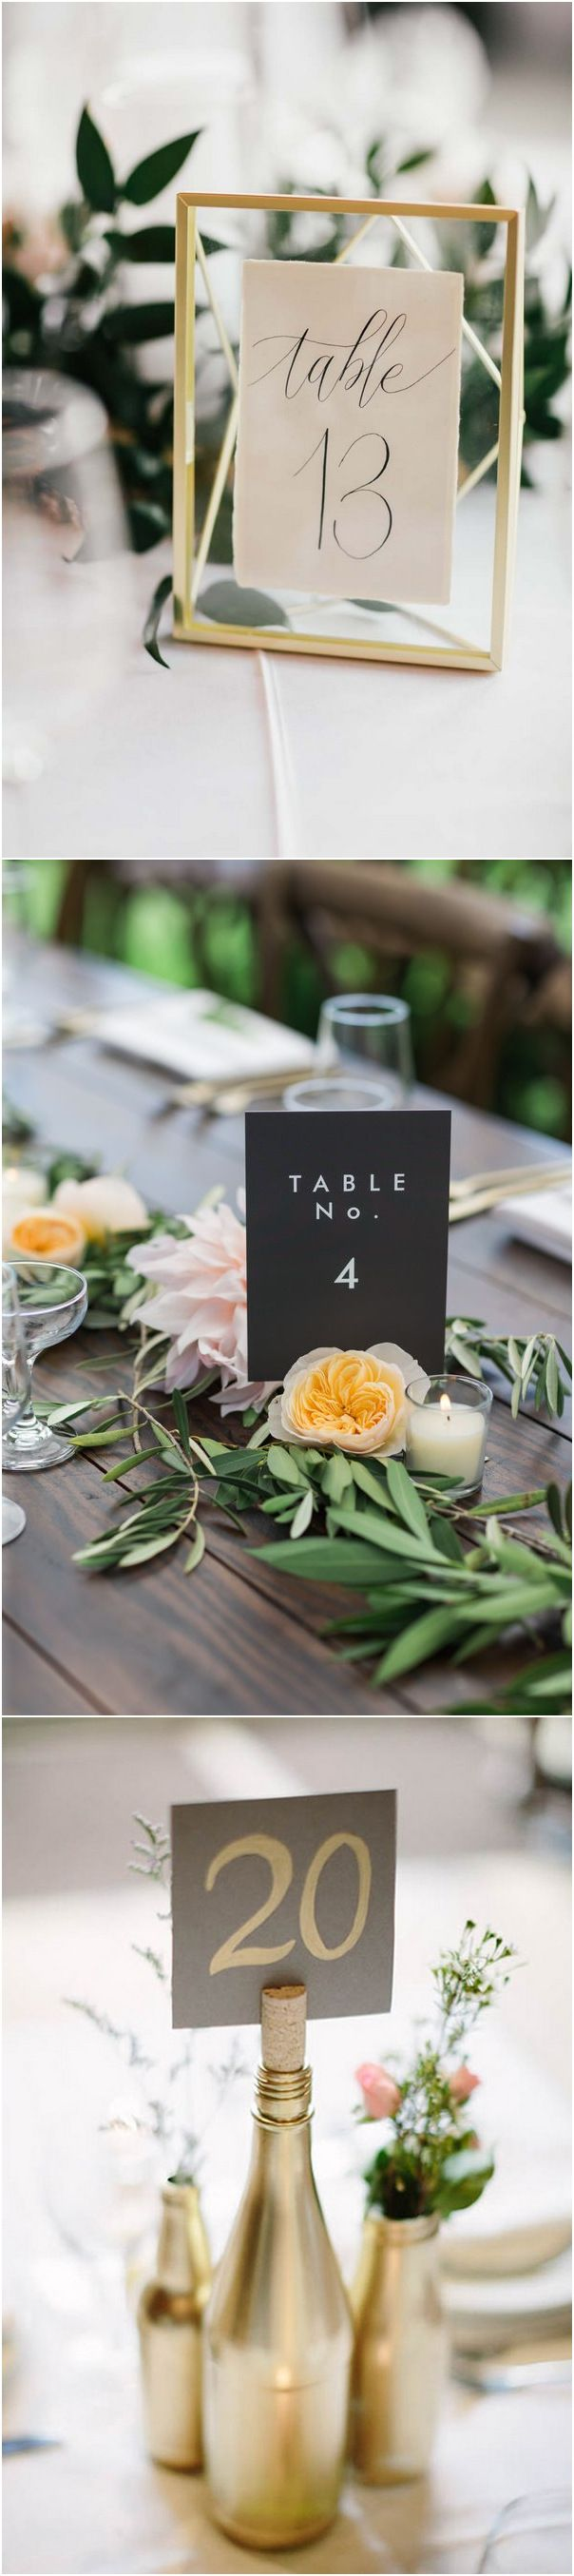 unique wedding table numbers ideas